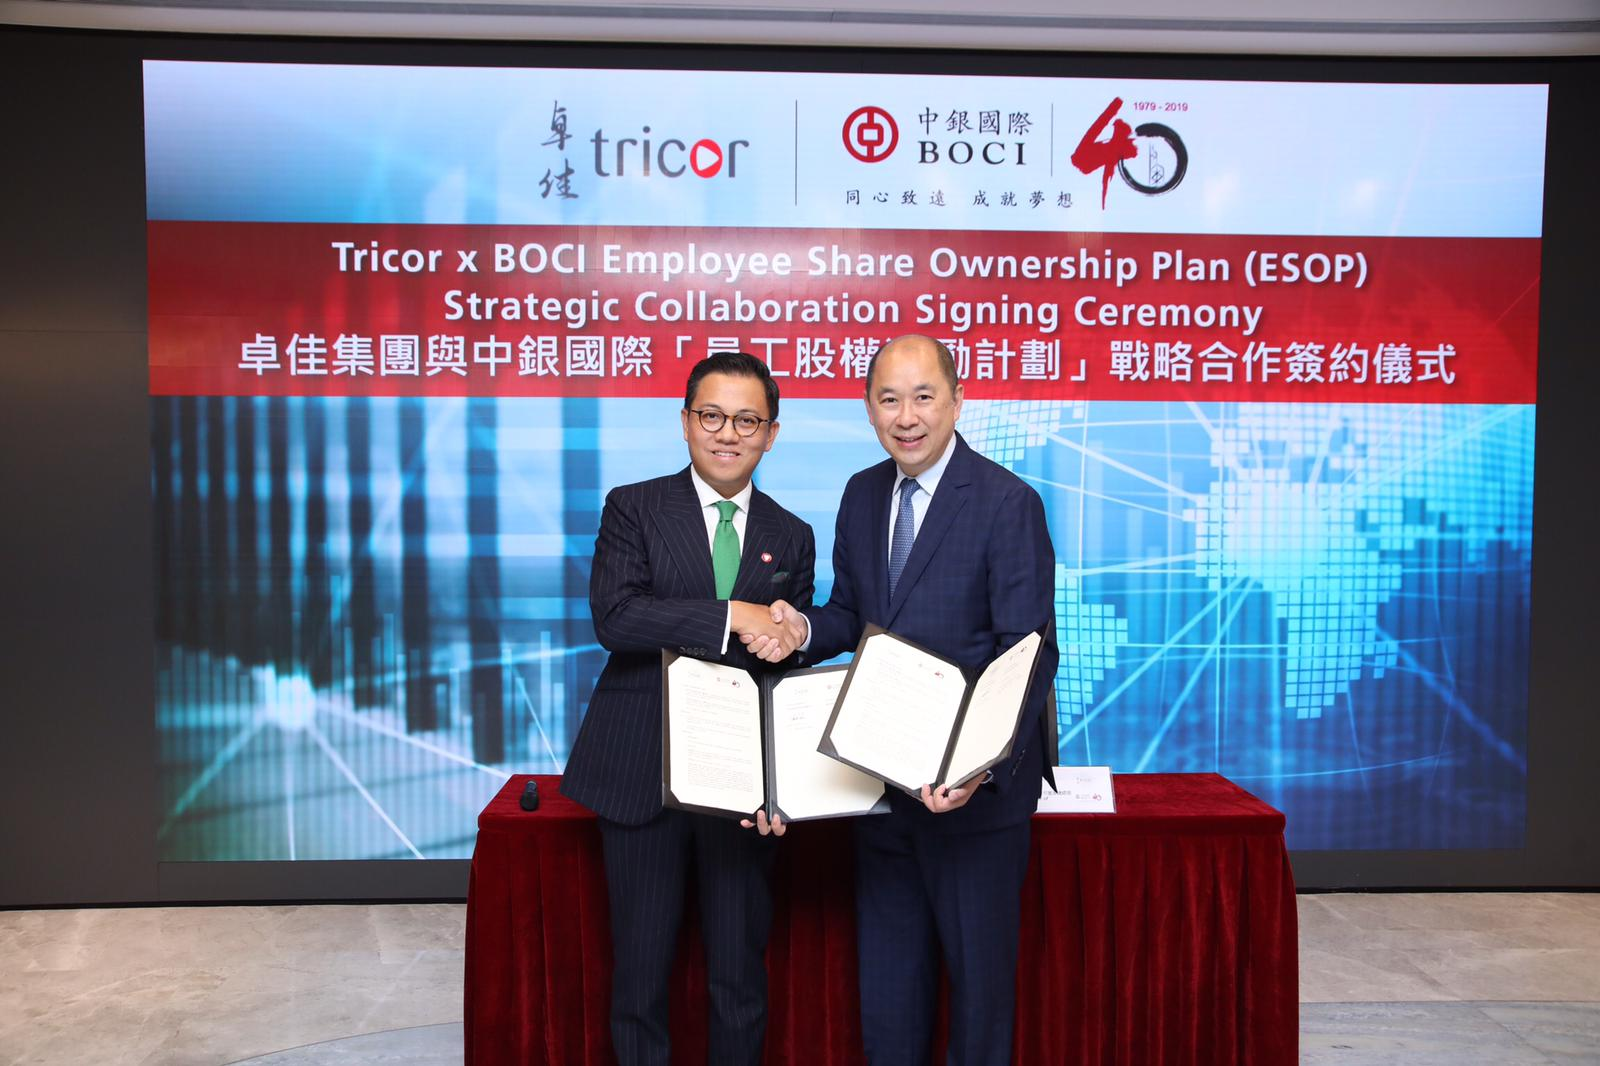 Tricor announces collaboration with BOCI to expand Employee Share Ownership Plan in China's Greater Bay Area and Yangtze River Delta Economic Region